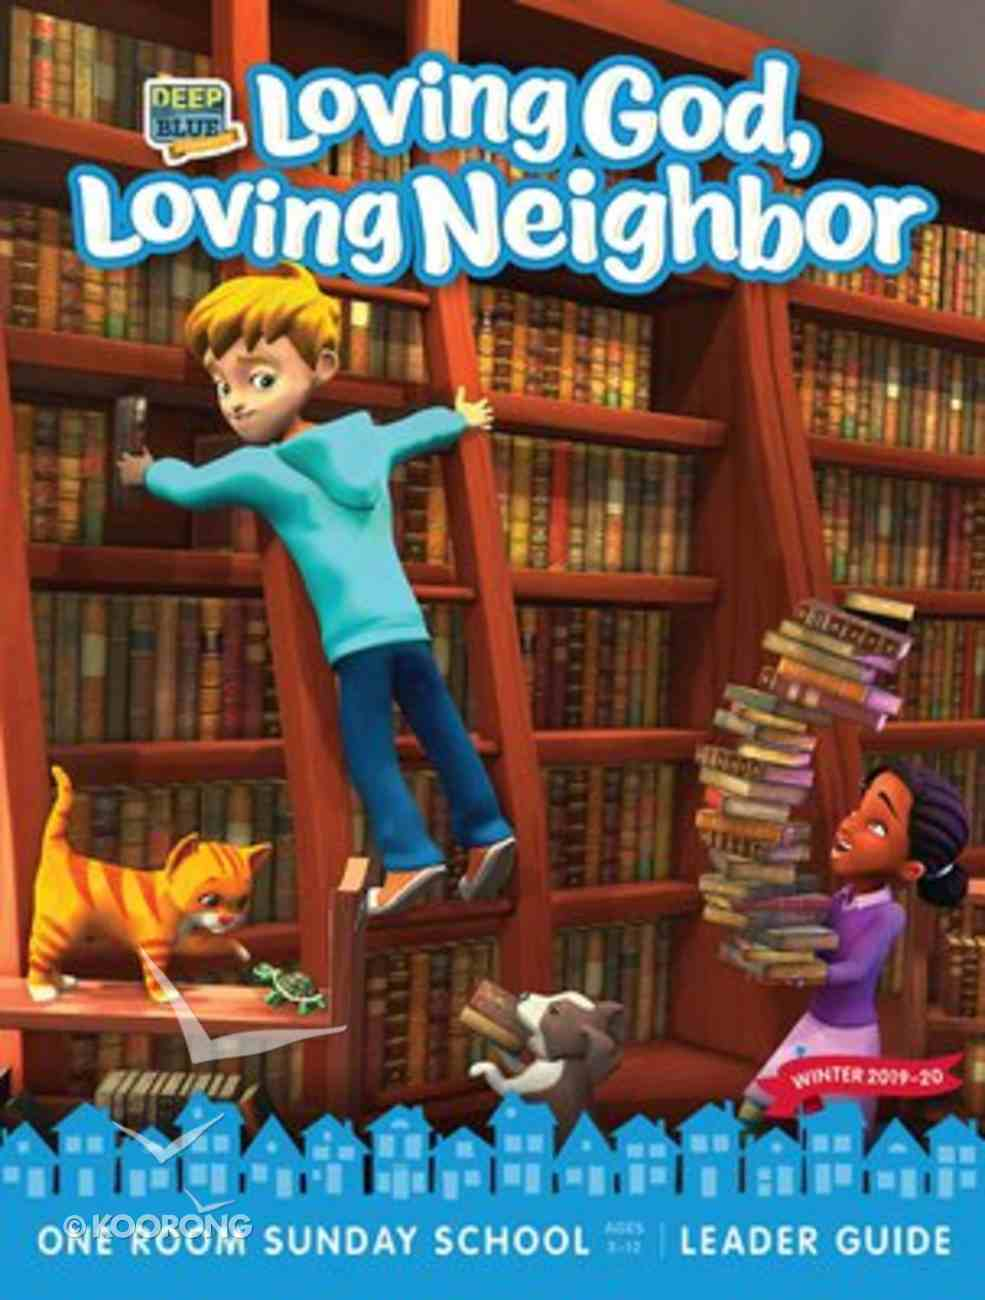 Deep Blue Connects : Loving God, Loving Neighbor (Ages 3-12) (Extra Leader Guide Winter 2019-20) (One Room Sunday School Series) Paperback